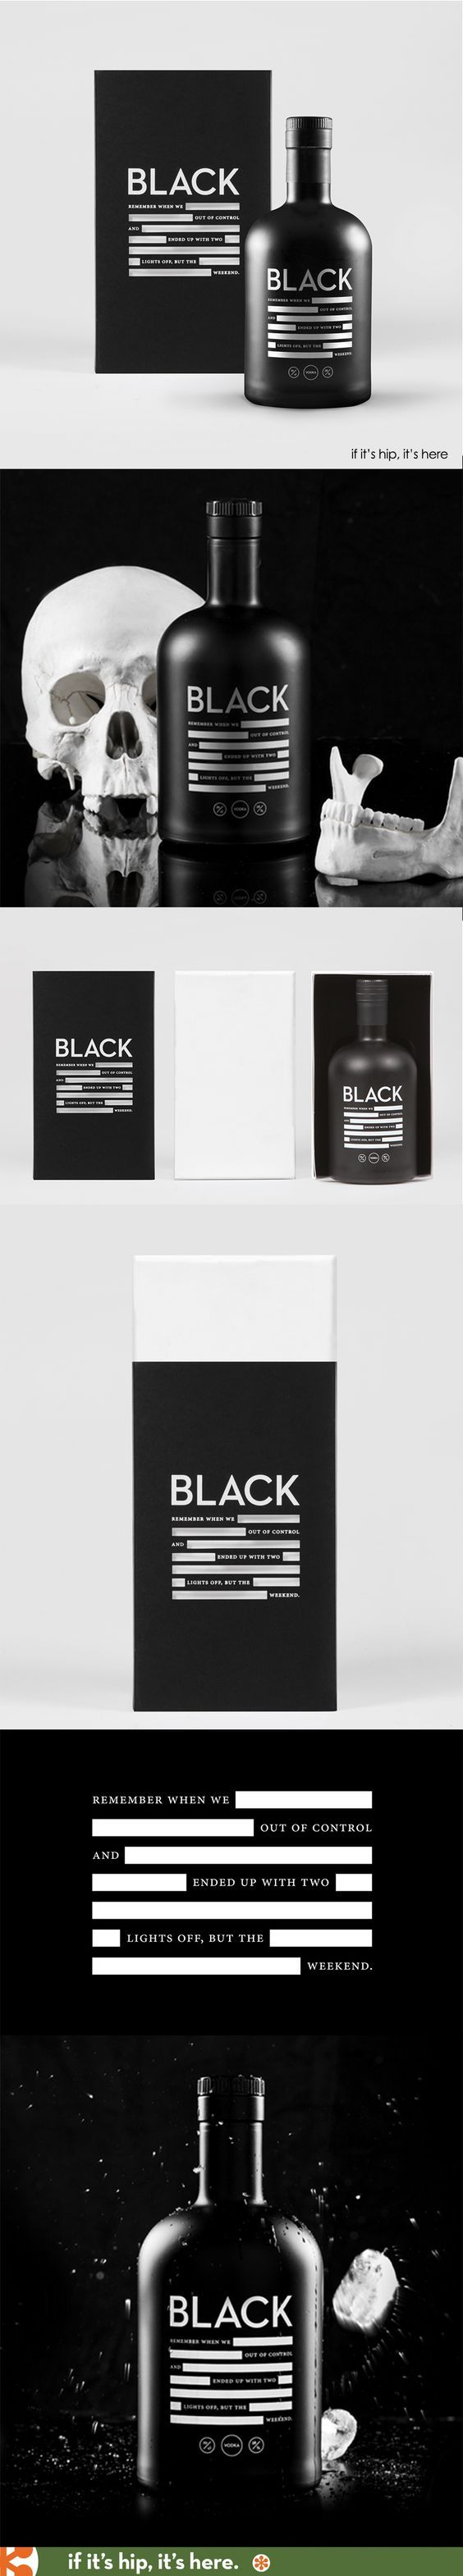 Black Vodka Packaging by Anti | Fivestar Branding Agency – Design and Branding Agency & Curated Inspiration Gallery